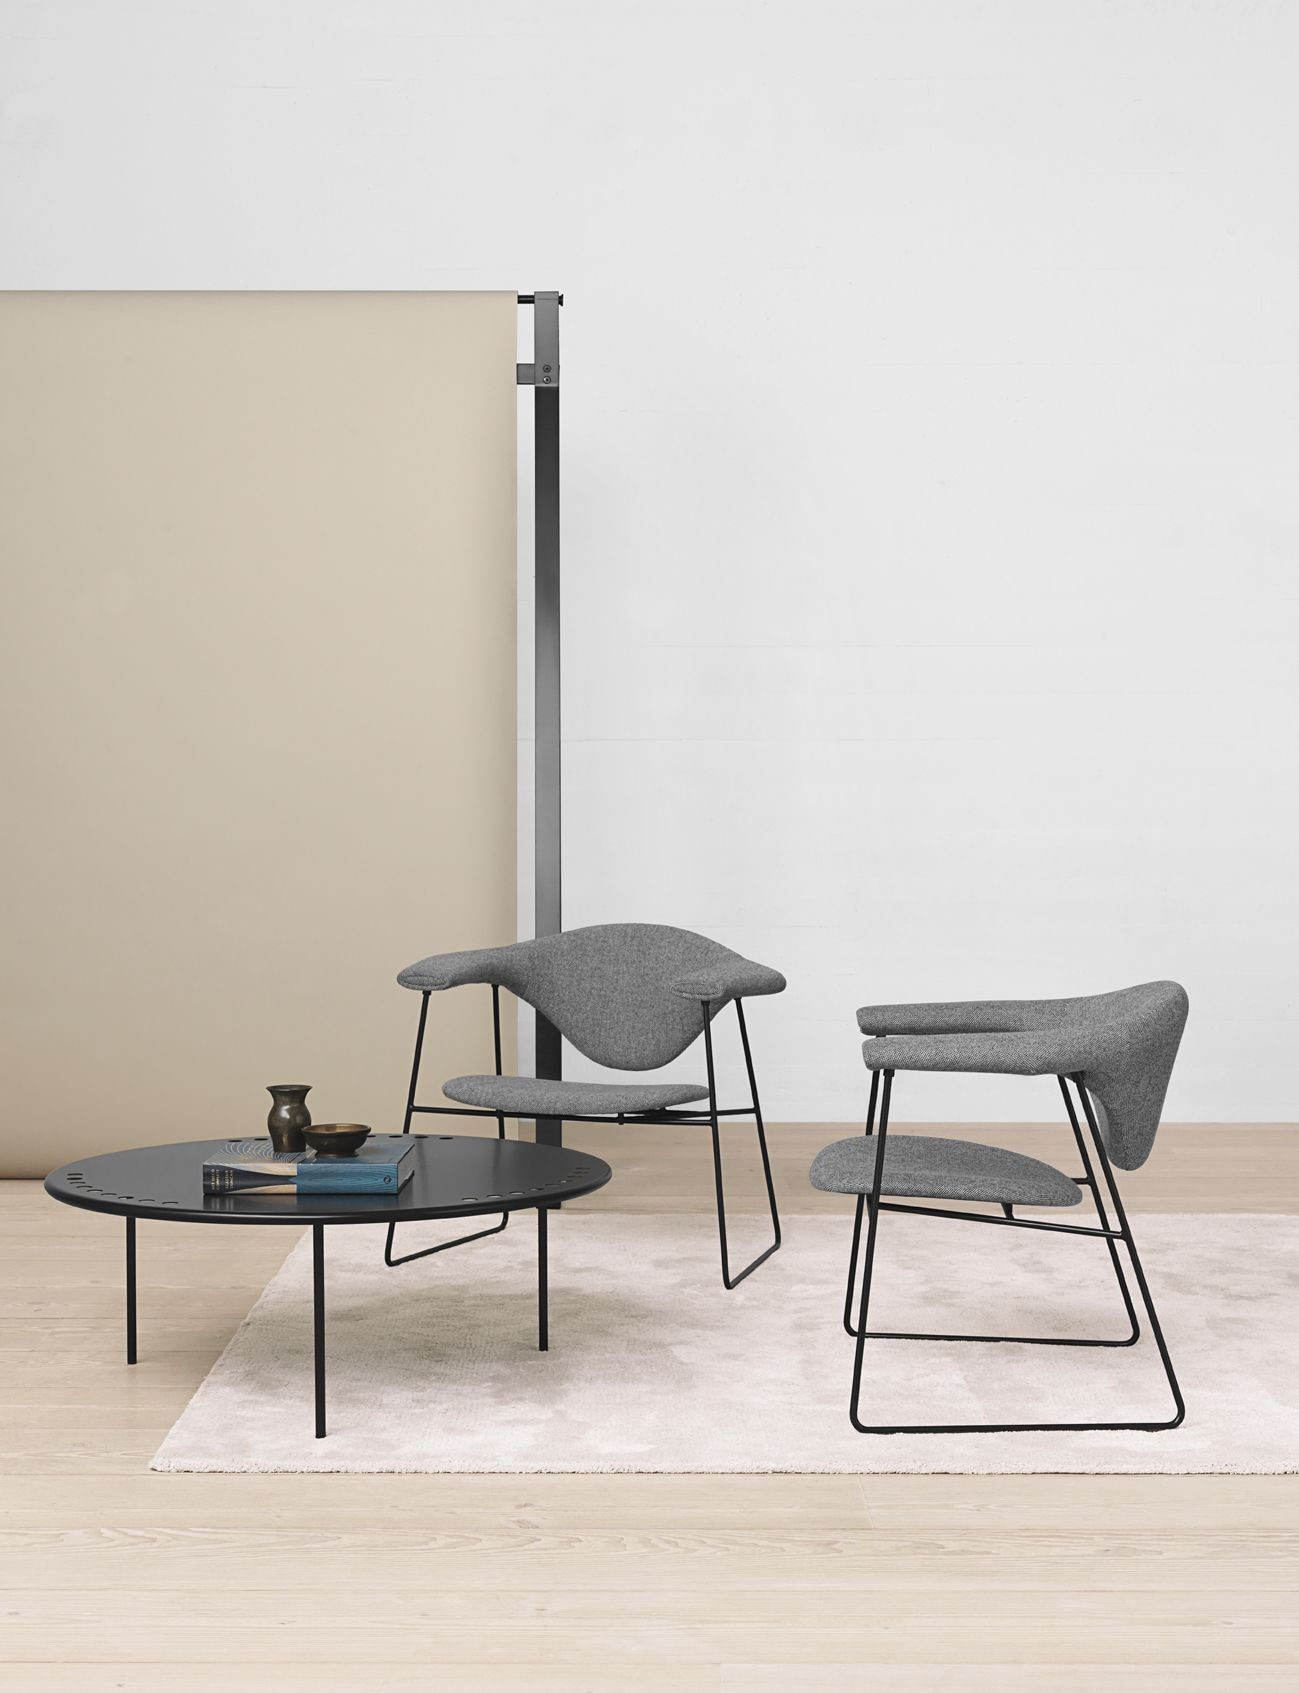 lounge tables and chairs. GUBI - Masculo Lounge Chair And Copacabana Table Http://decdesignecasa.blogspot. Tables Chairs I